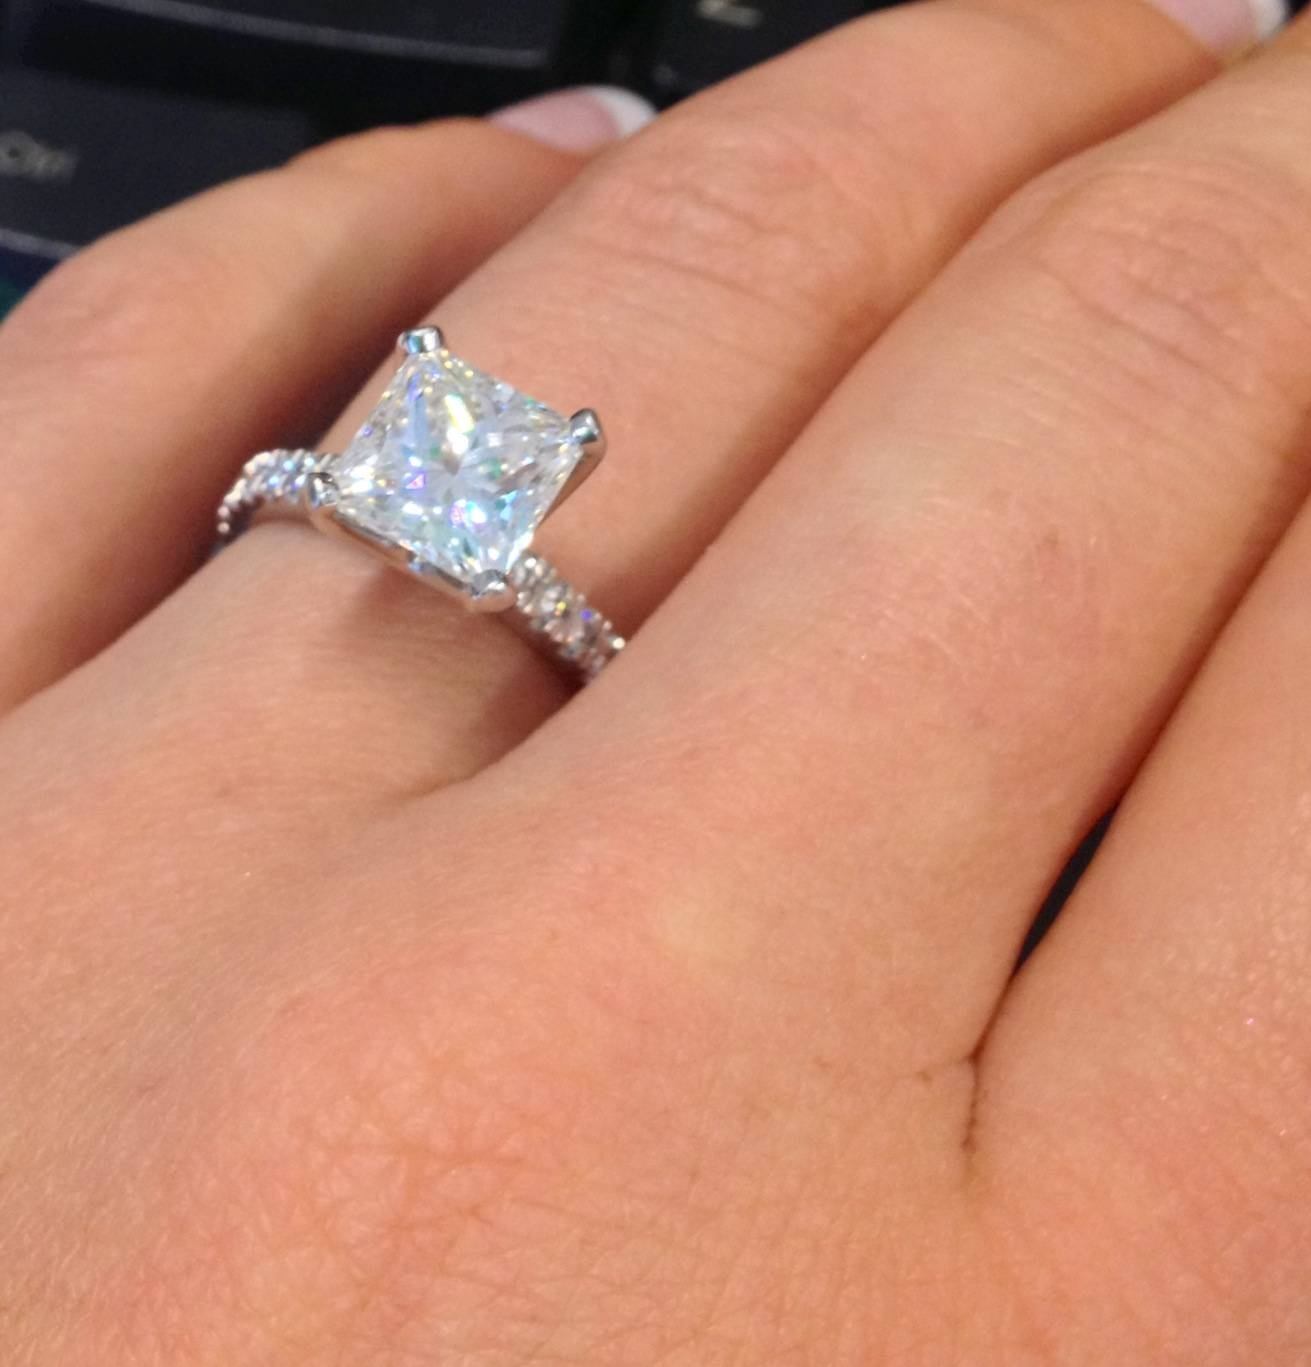 Engagement Rings : Wonderful Engagement Rings Diamond Band My 1 5 With Regard To Wedding Rings With Diamond Band (View 13 of 15)